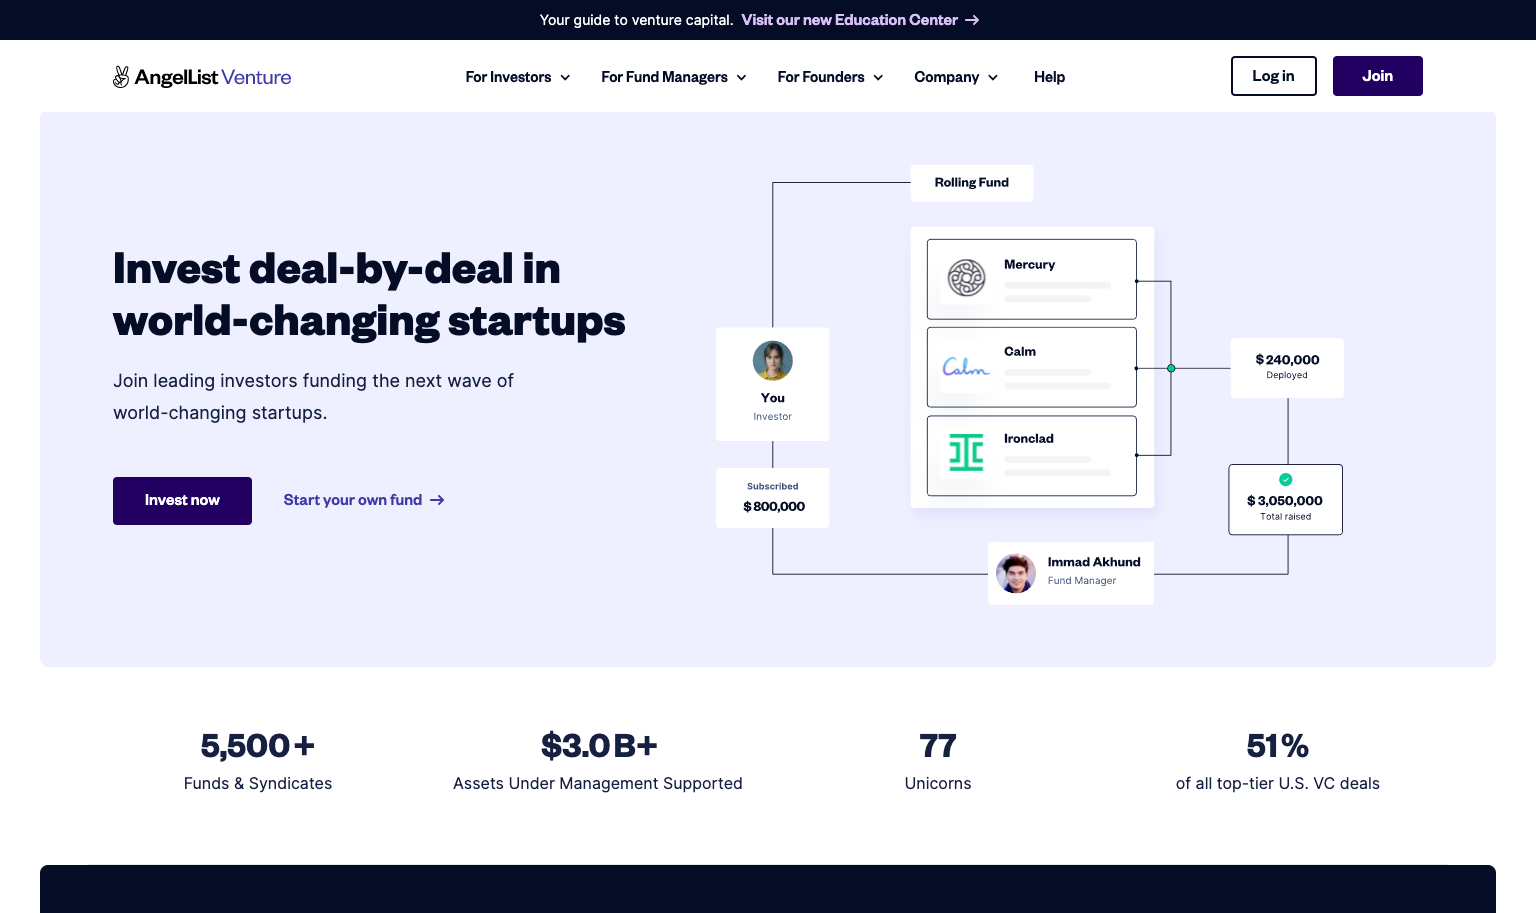 AngelList Venture uses two button styles to highlight their Login and Join links for easy access.